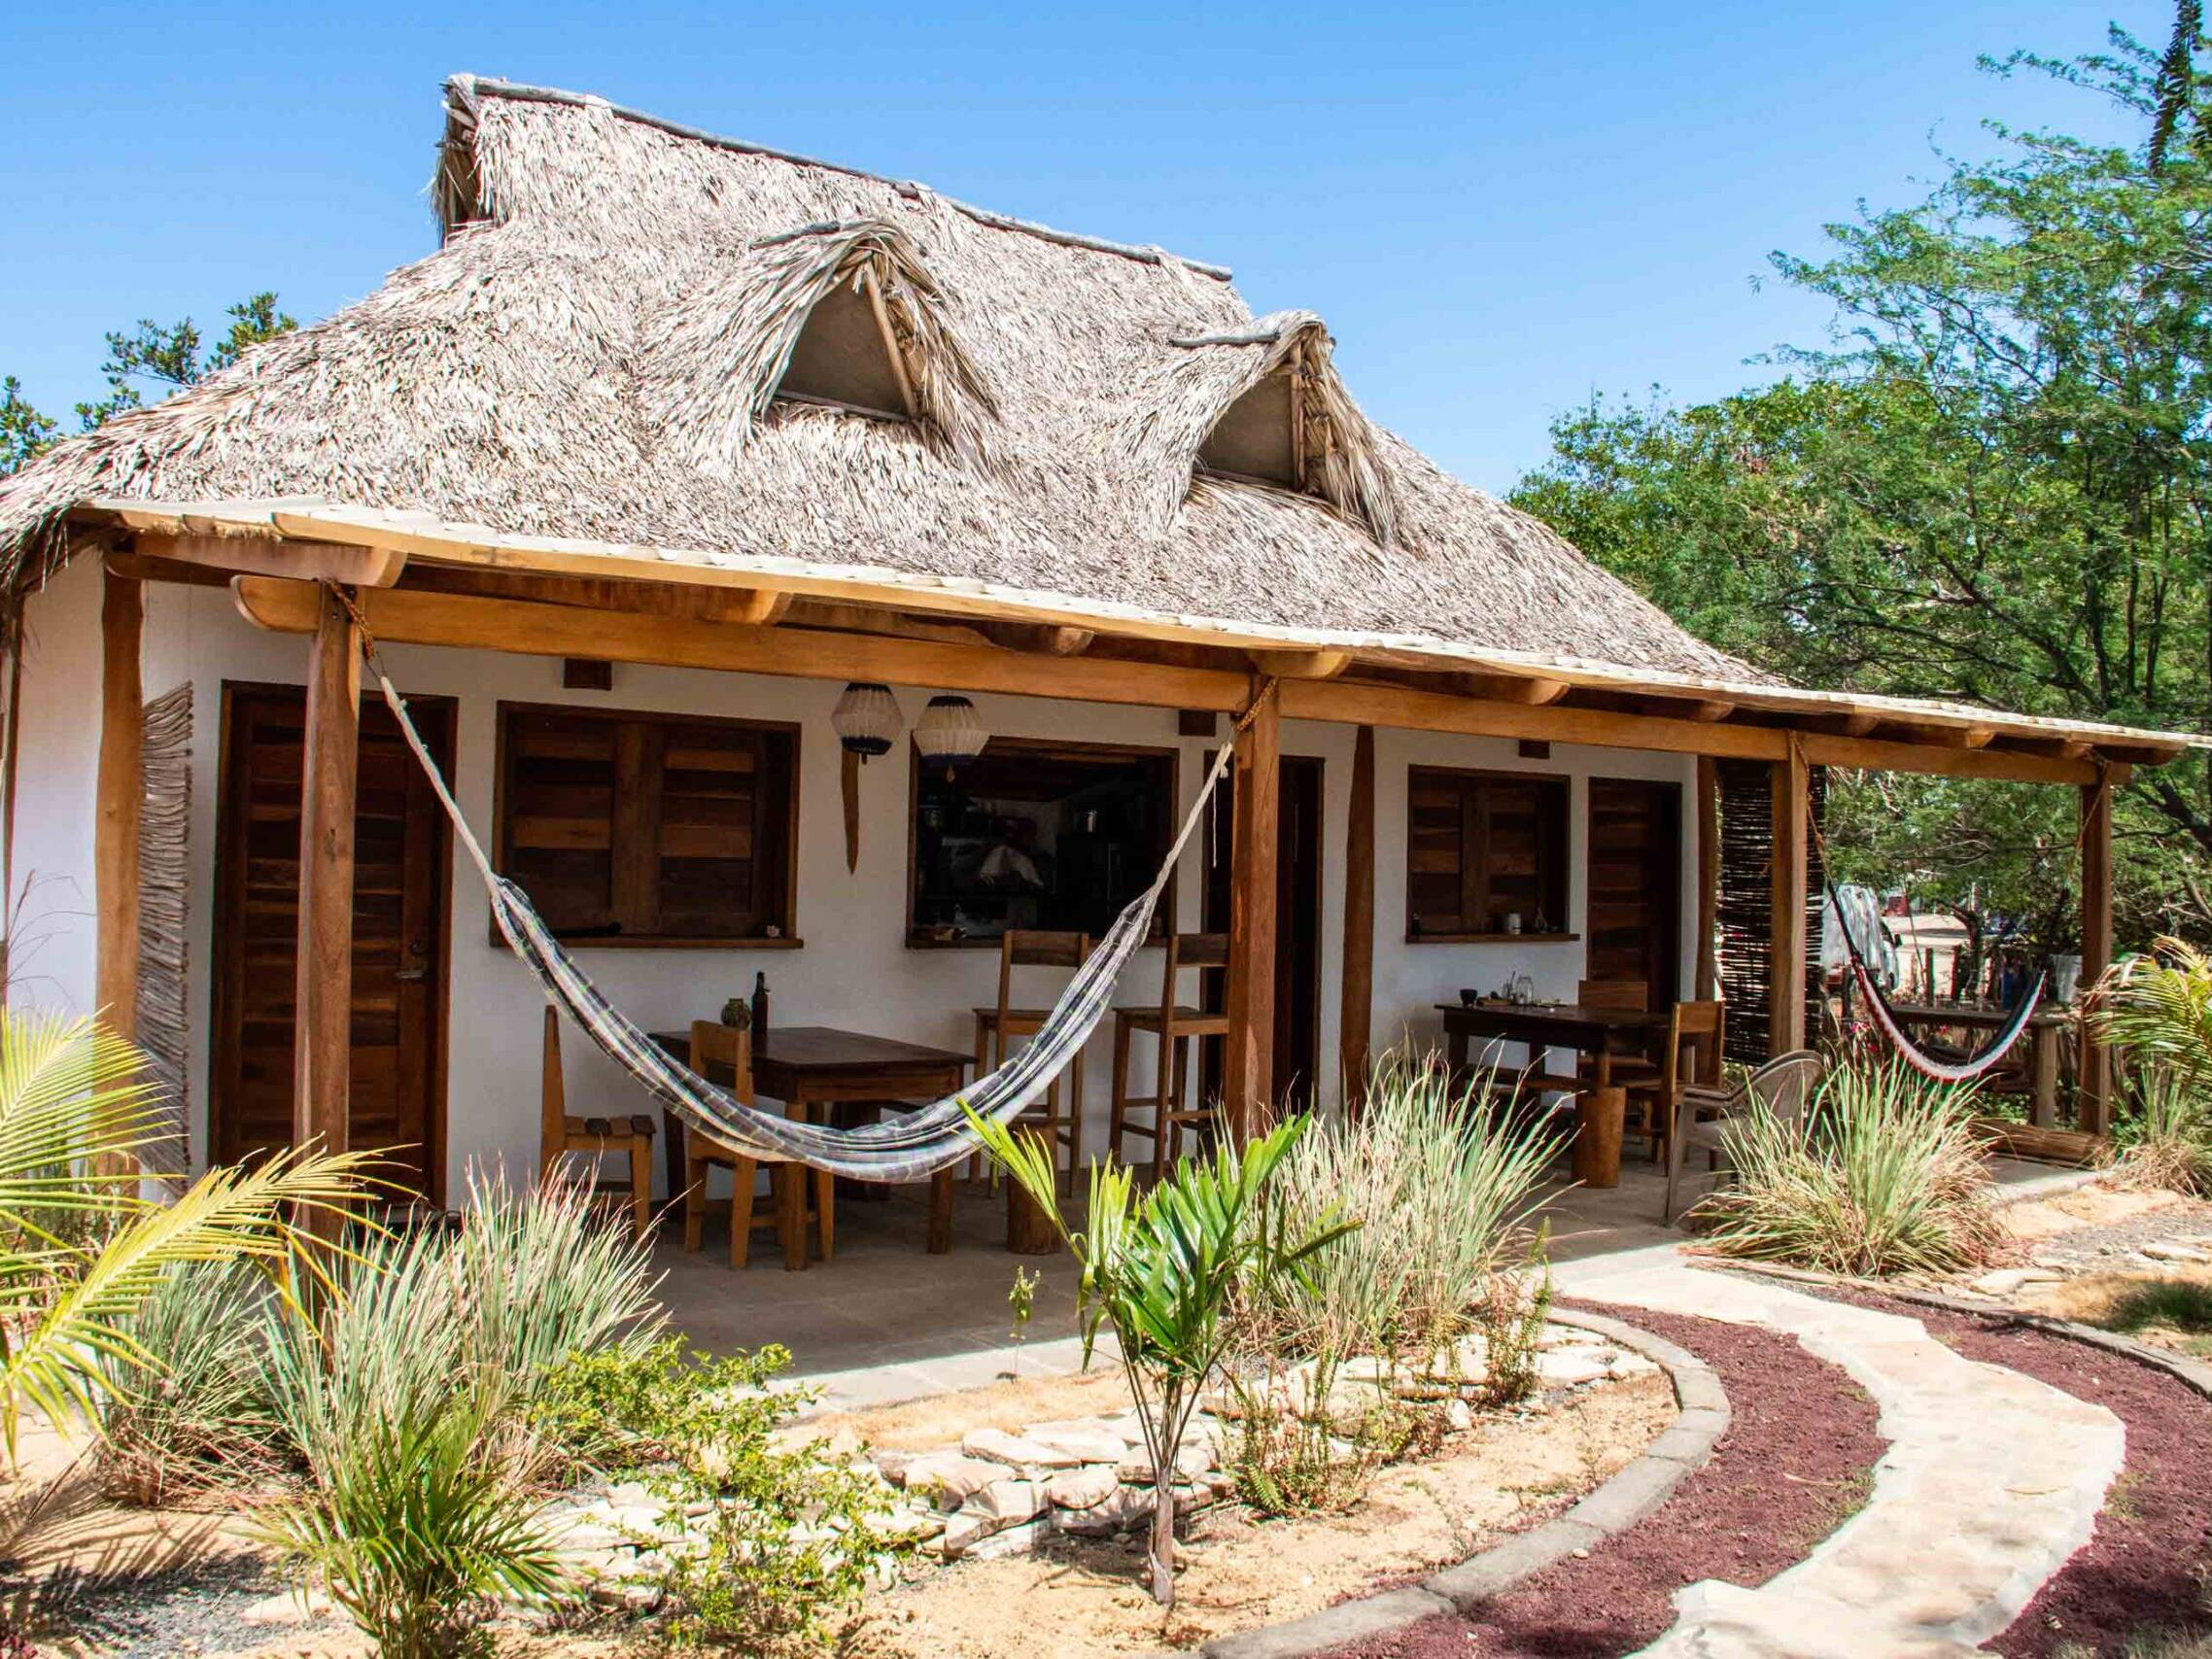 Two Ten Surf accommodation in Playa Guasacate Nicaragua